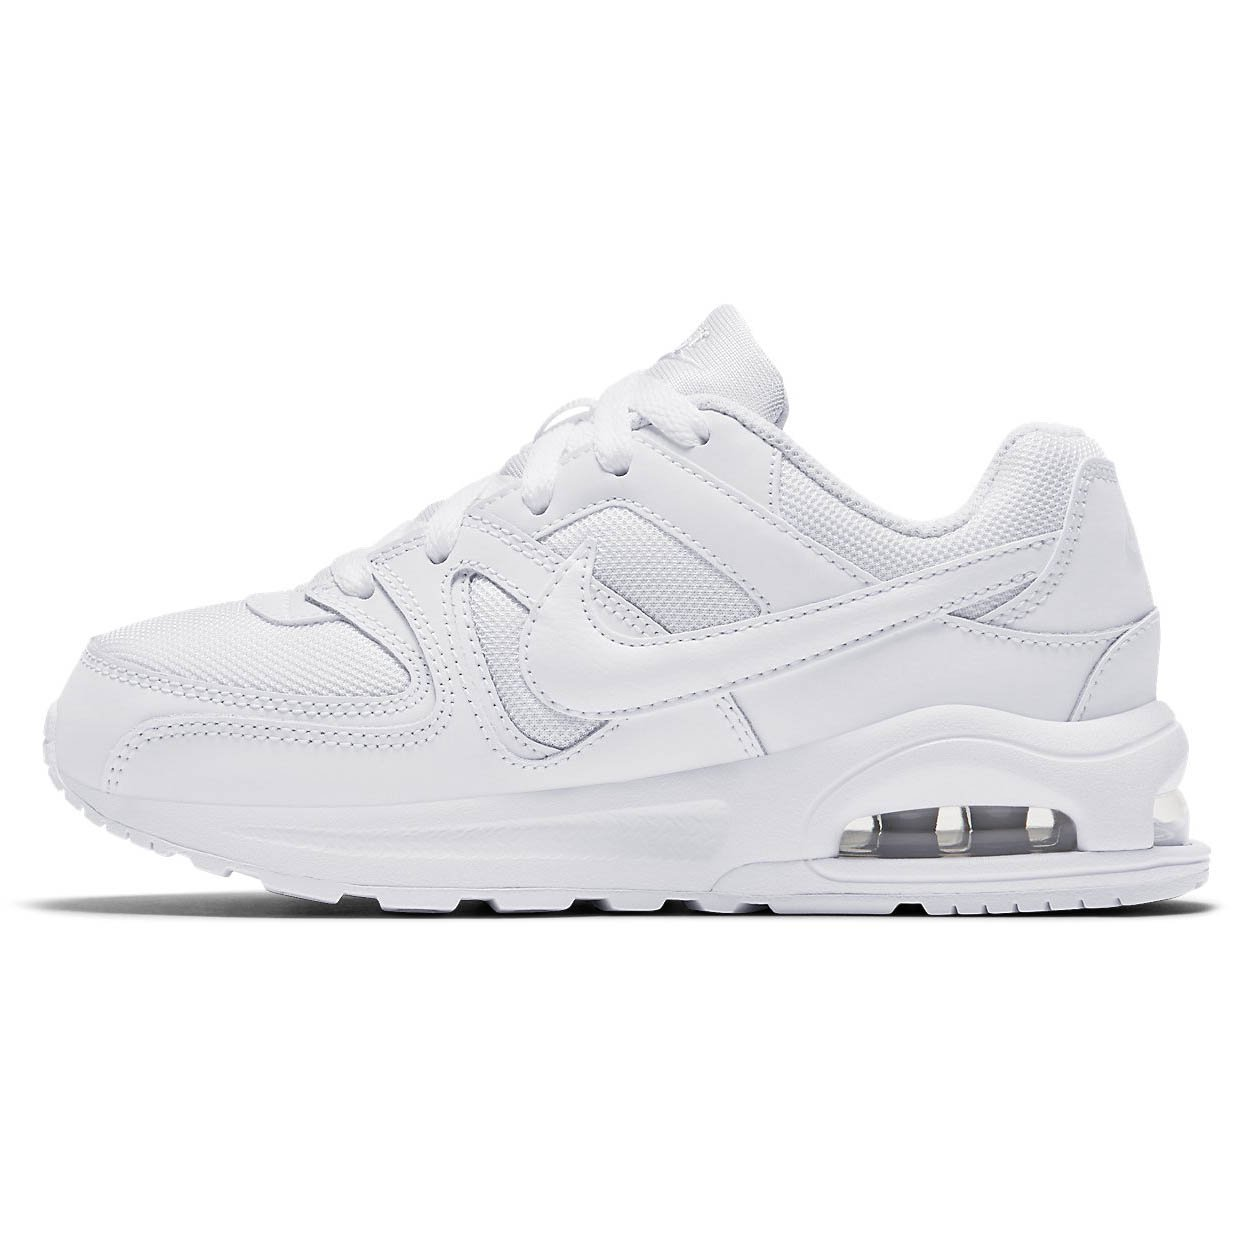 5fb6432c74 Nike Air Max Command Flex Ps - Leisure / Sneakers | Nencini Sport